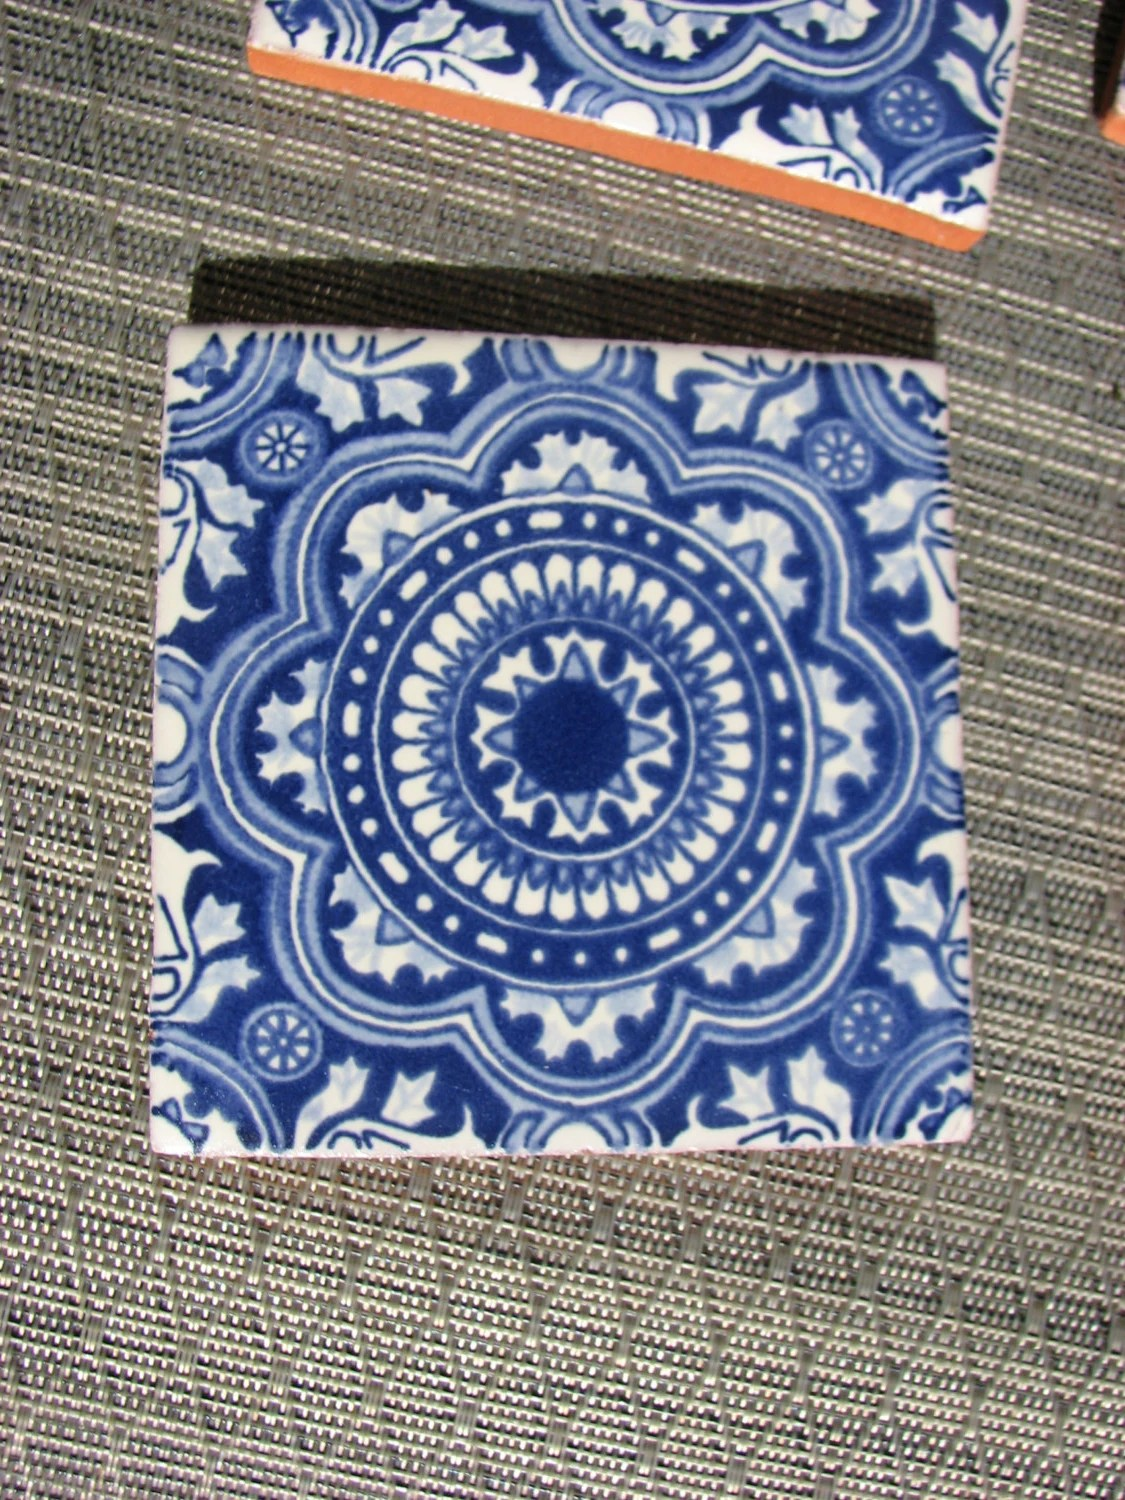 Blue and white Mexican tile Coasters set of 4